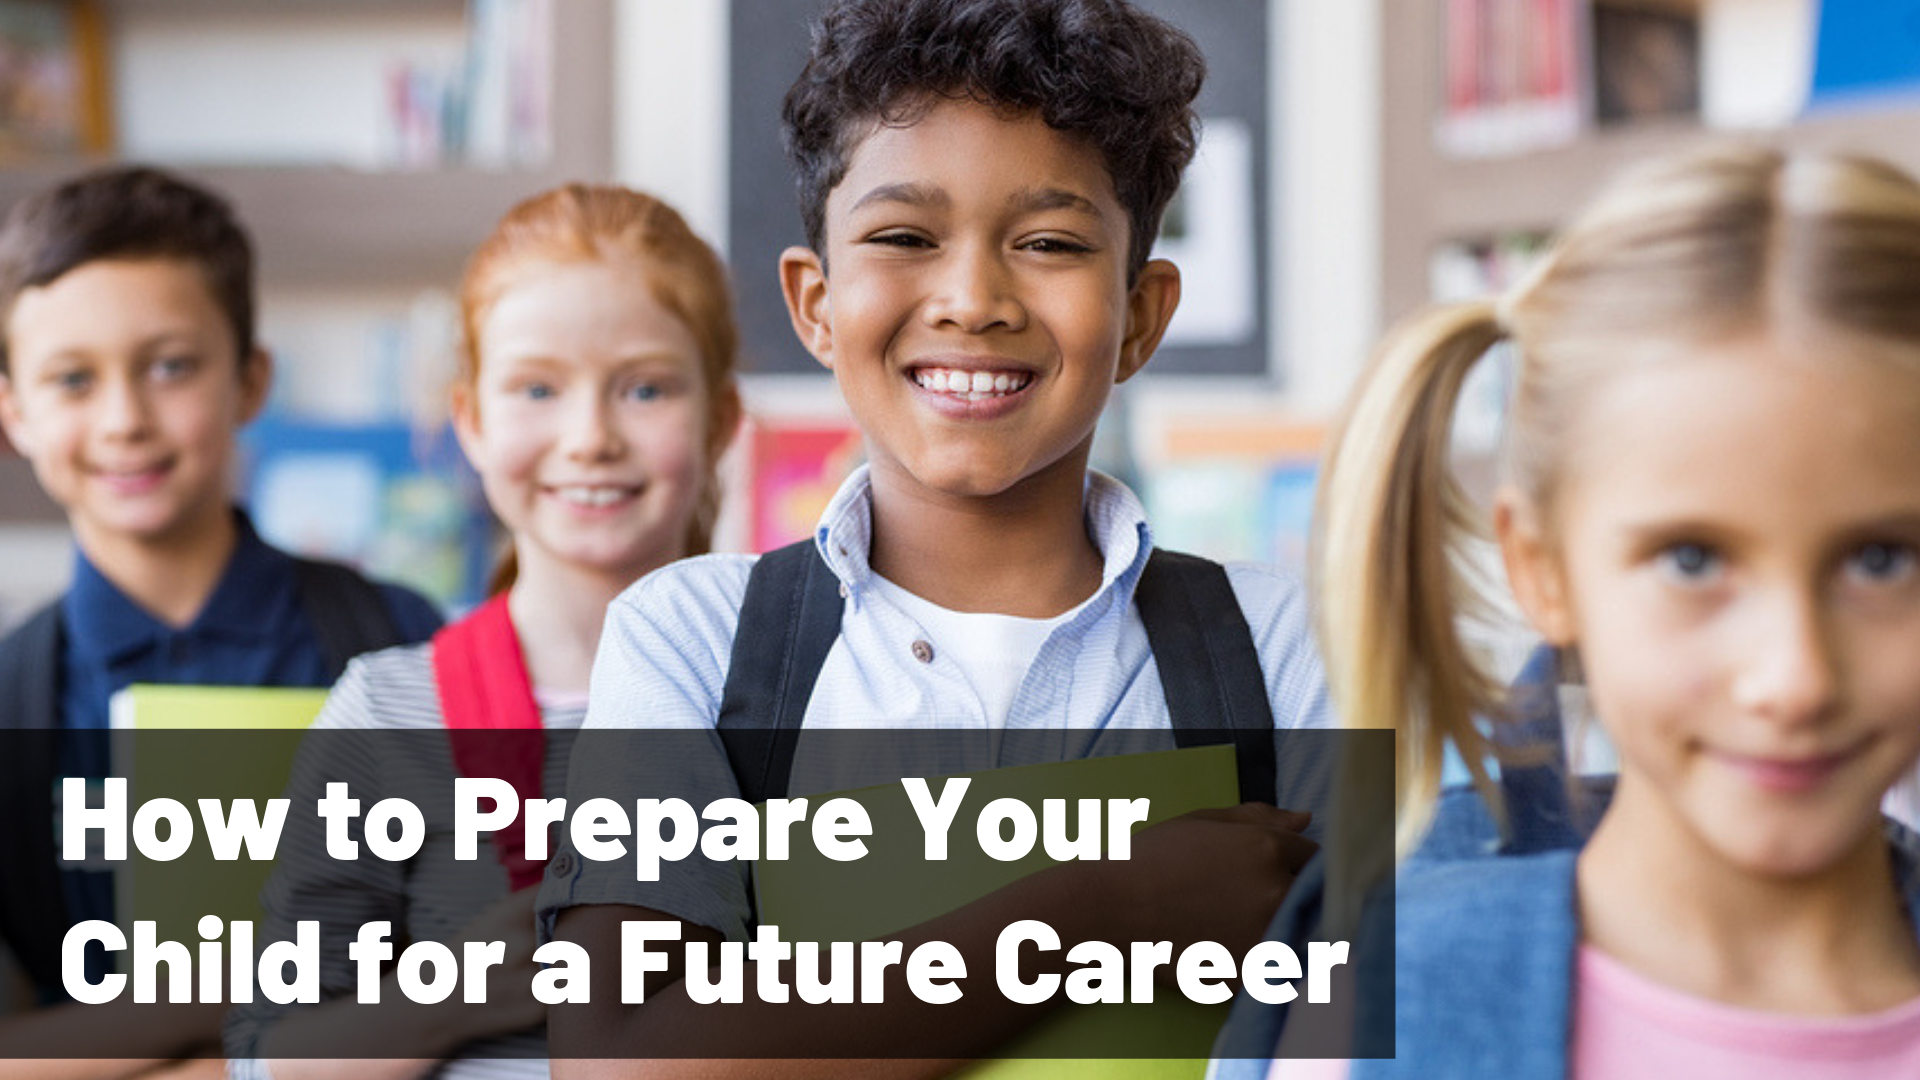 How to Prepare Your Child for a Future Career